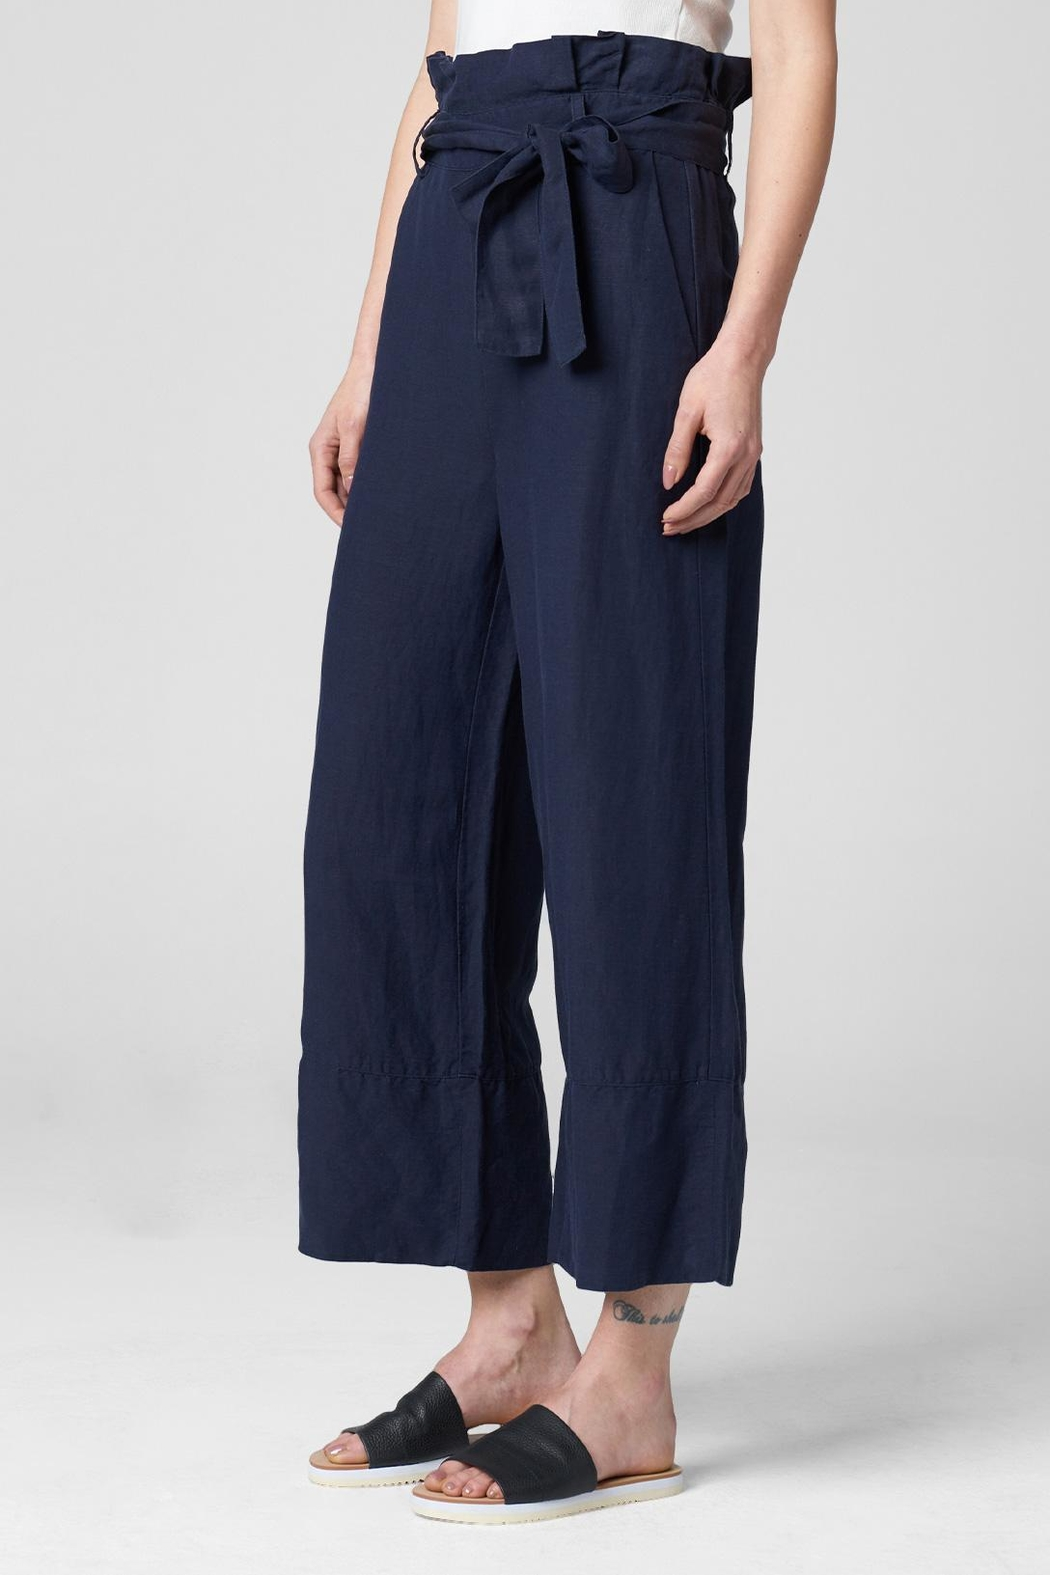 Blank NYC Navy Paperbag Pant - Side Cropped Image